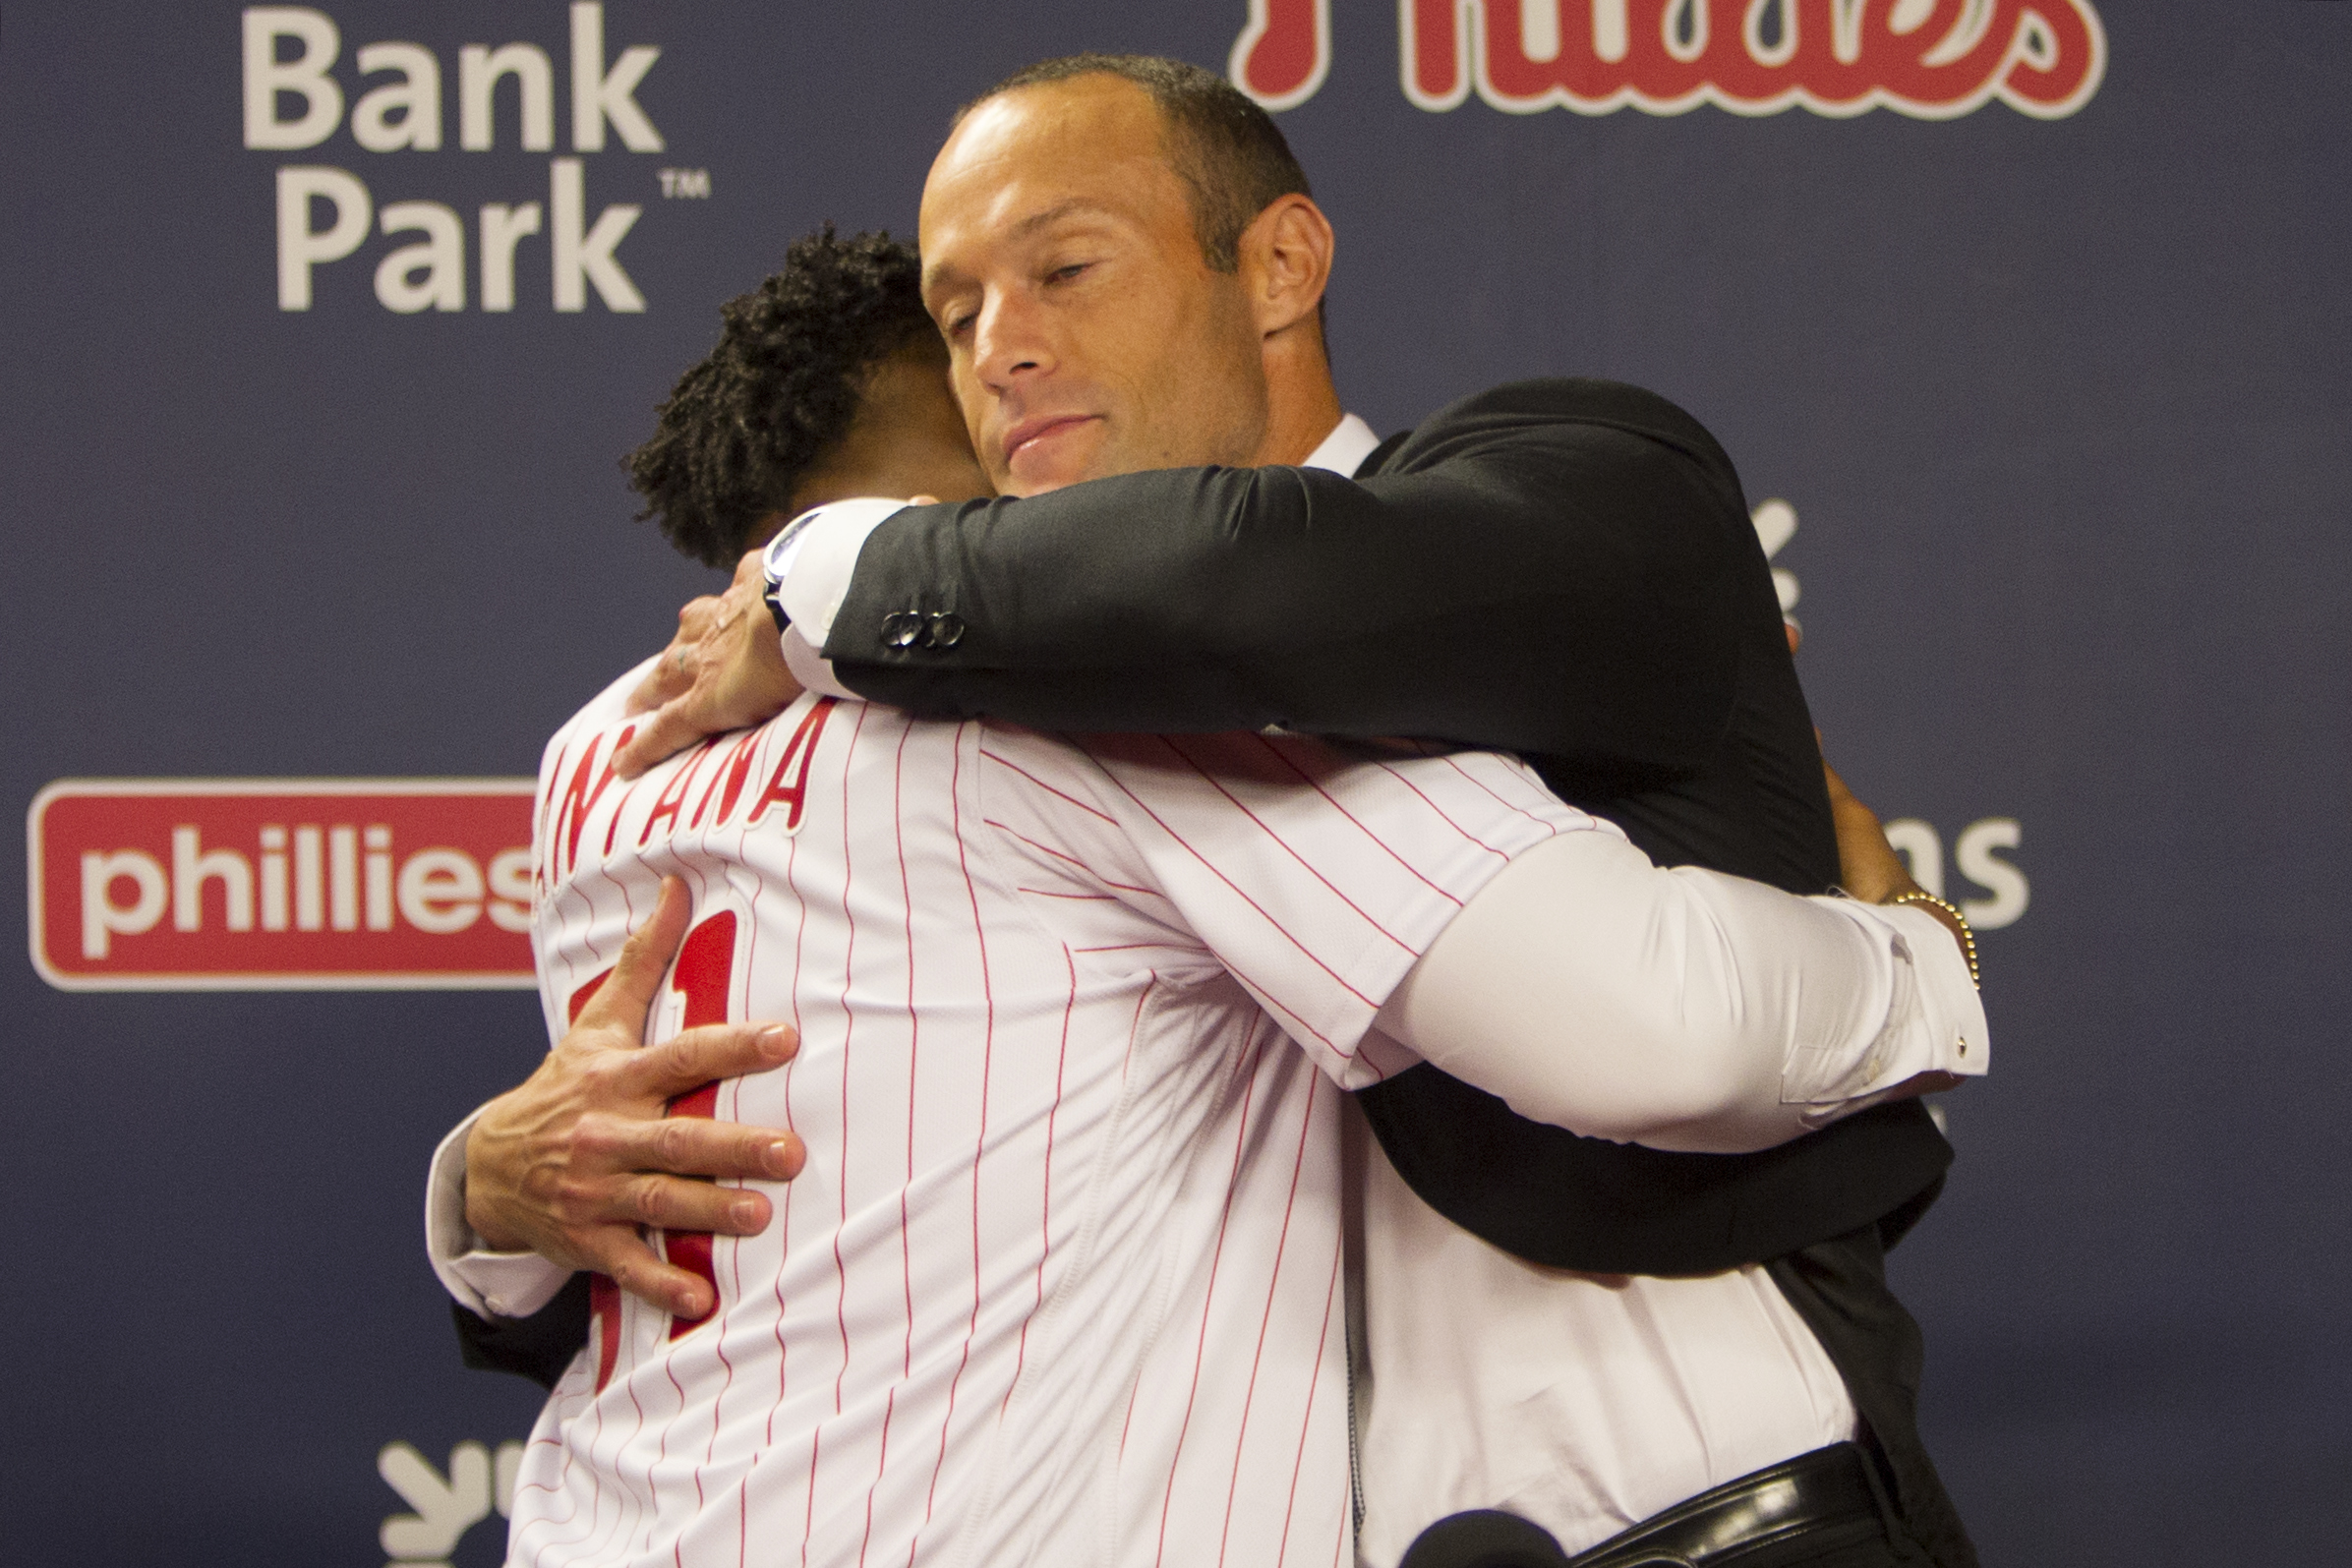 Phillies manager Gabe Kapler, right, hugging newly signed first baseman Carlos Santana last month.